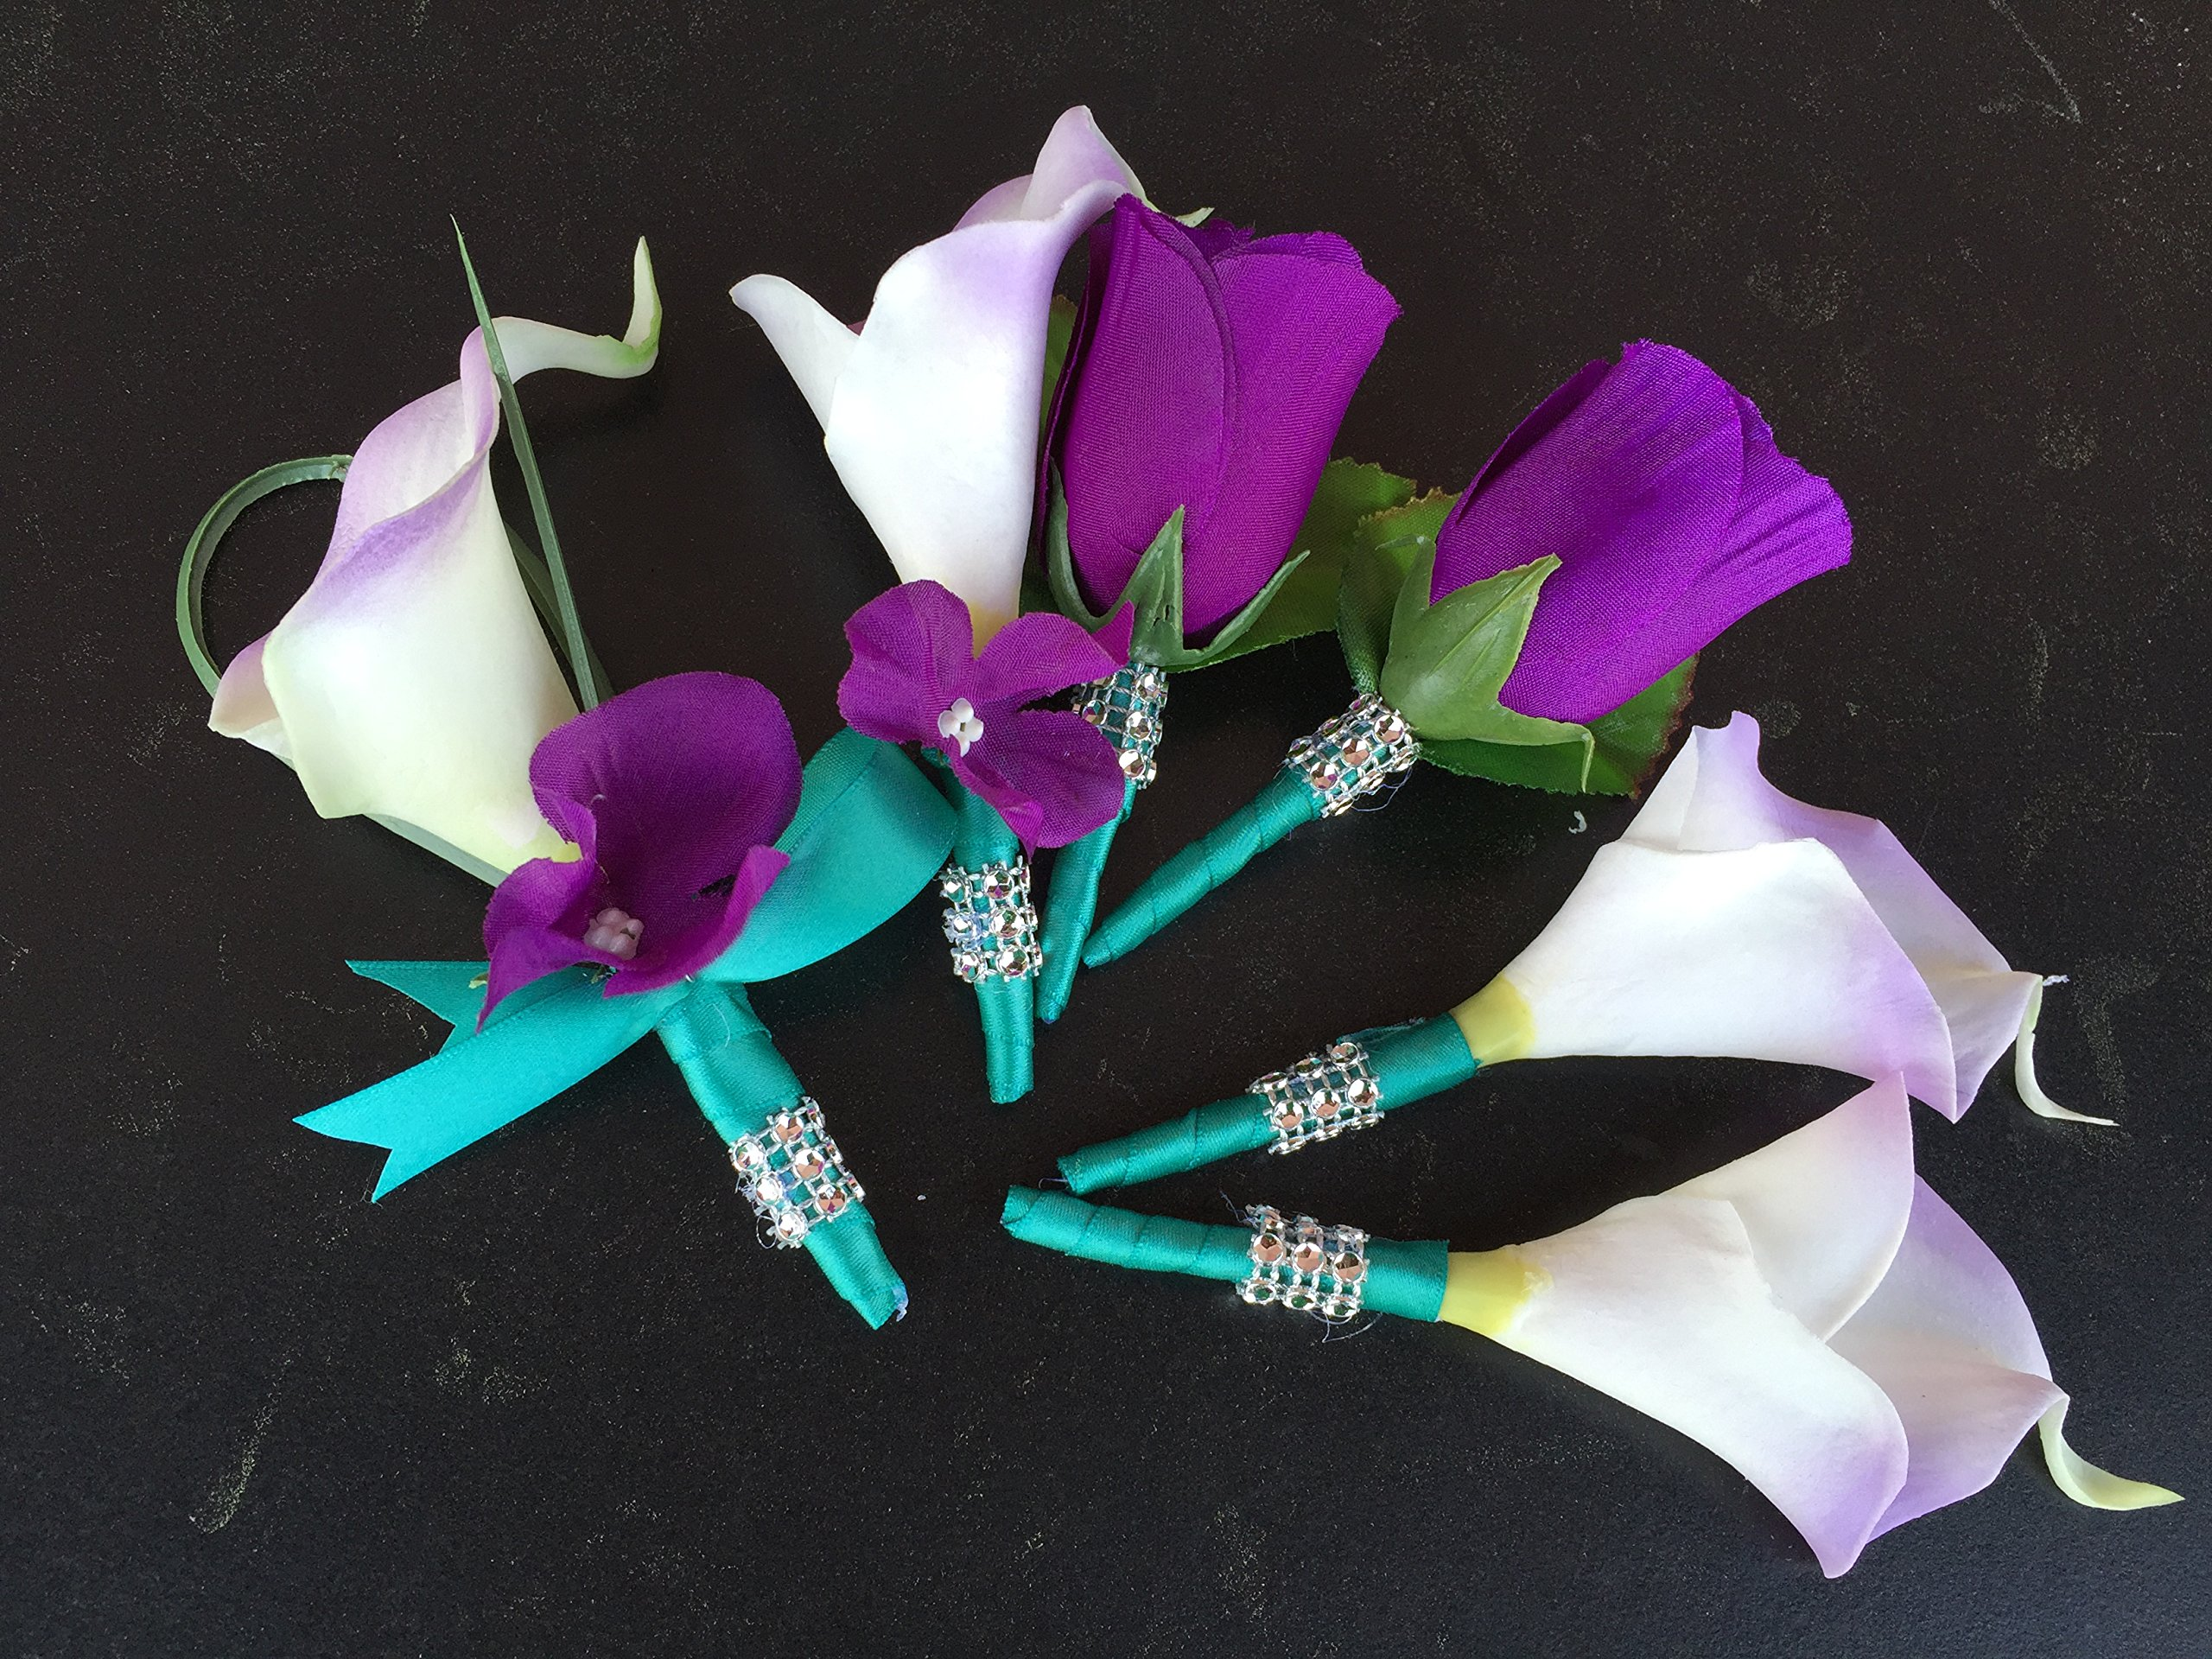 6pcs-Set-of-Boutonniere-Calla-Lily-Hydrangea-Roseartificial-Flowers